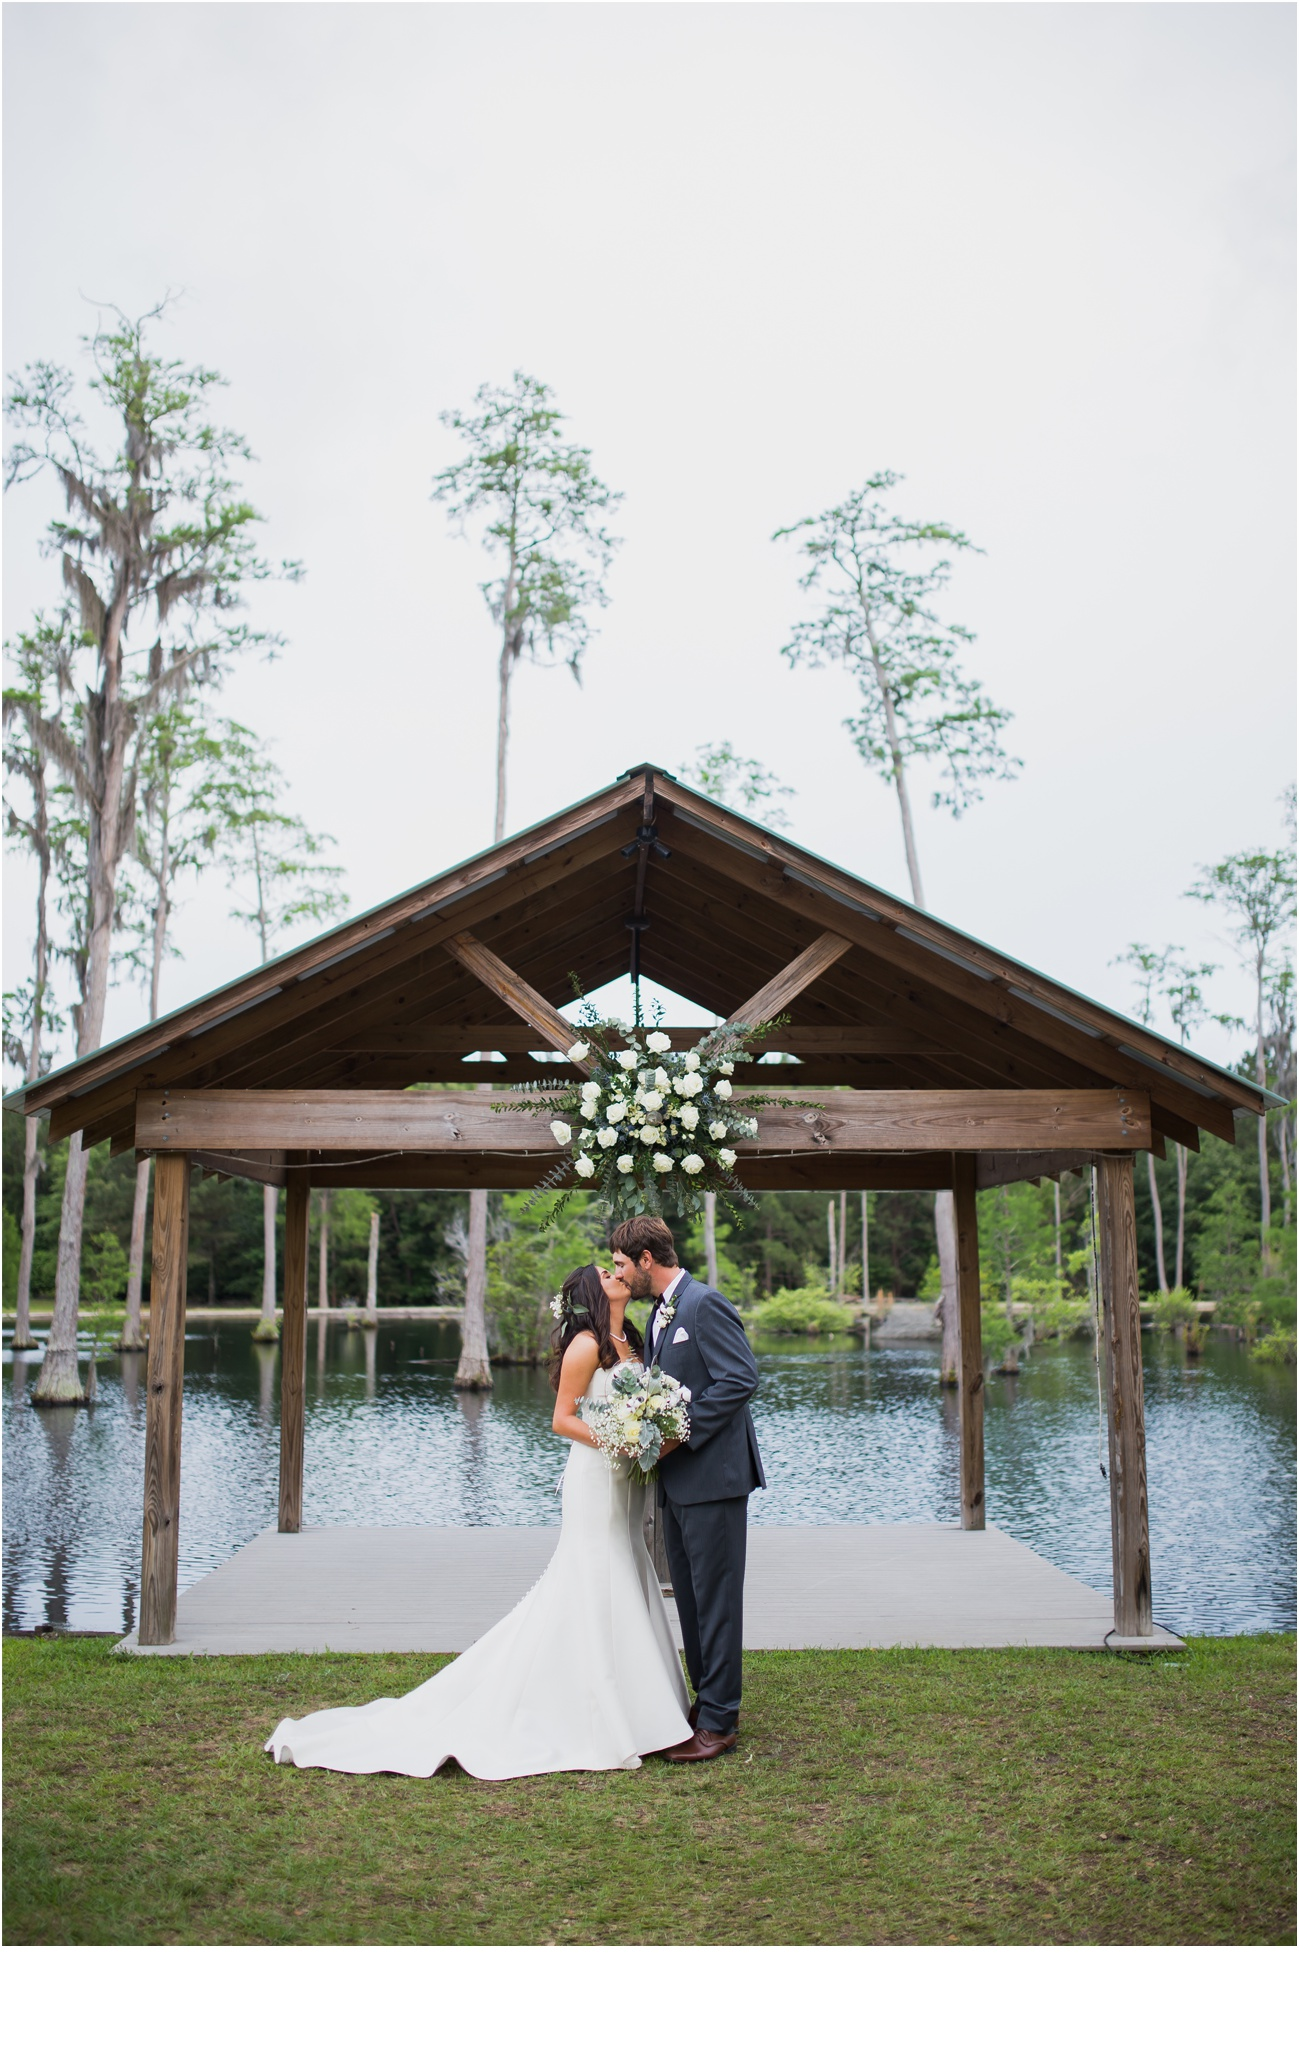 Rainey_Gregg_Photography_St._Simons_Island_Georgia_California_Wedding_Portrait_Photography_1004.jpg